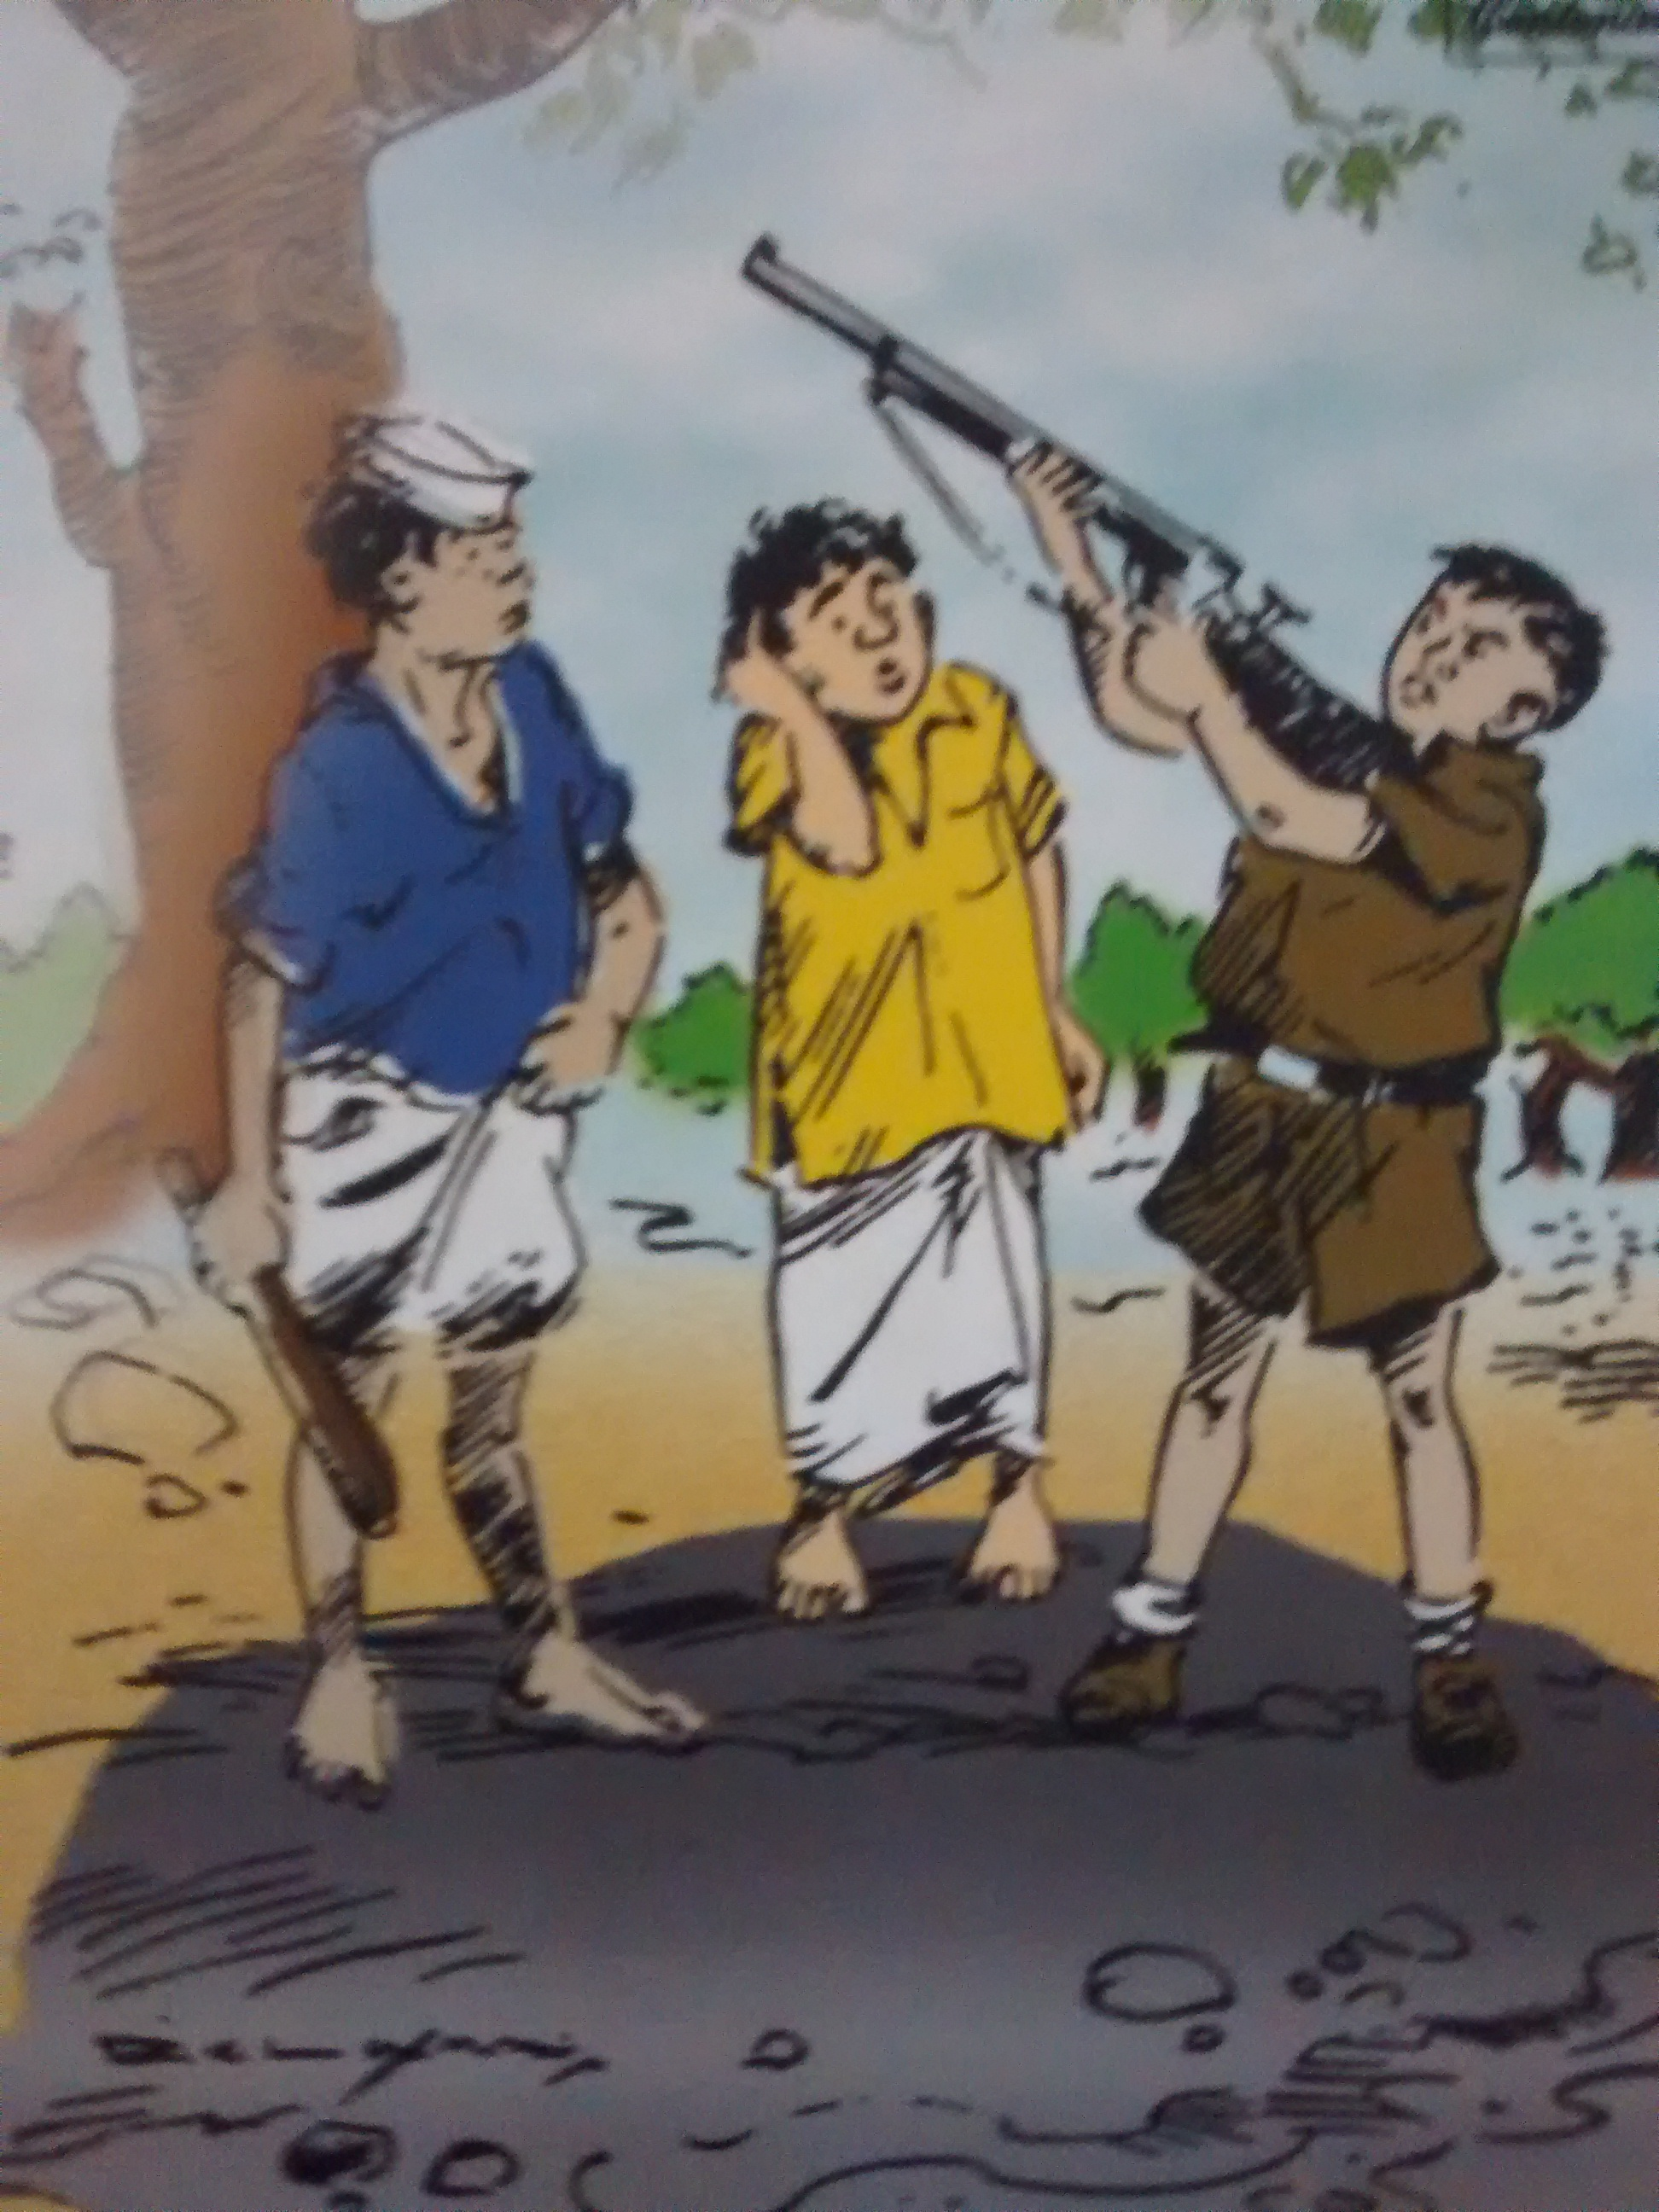 [Cover of Malgudi Days by R.K. Laxman]